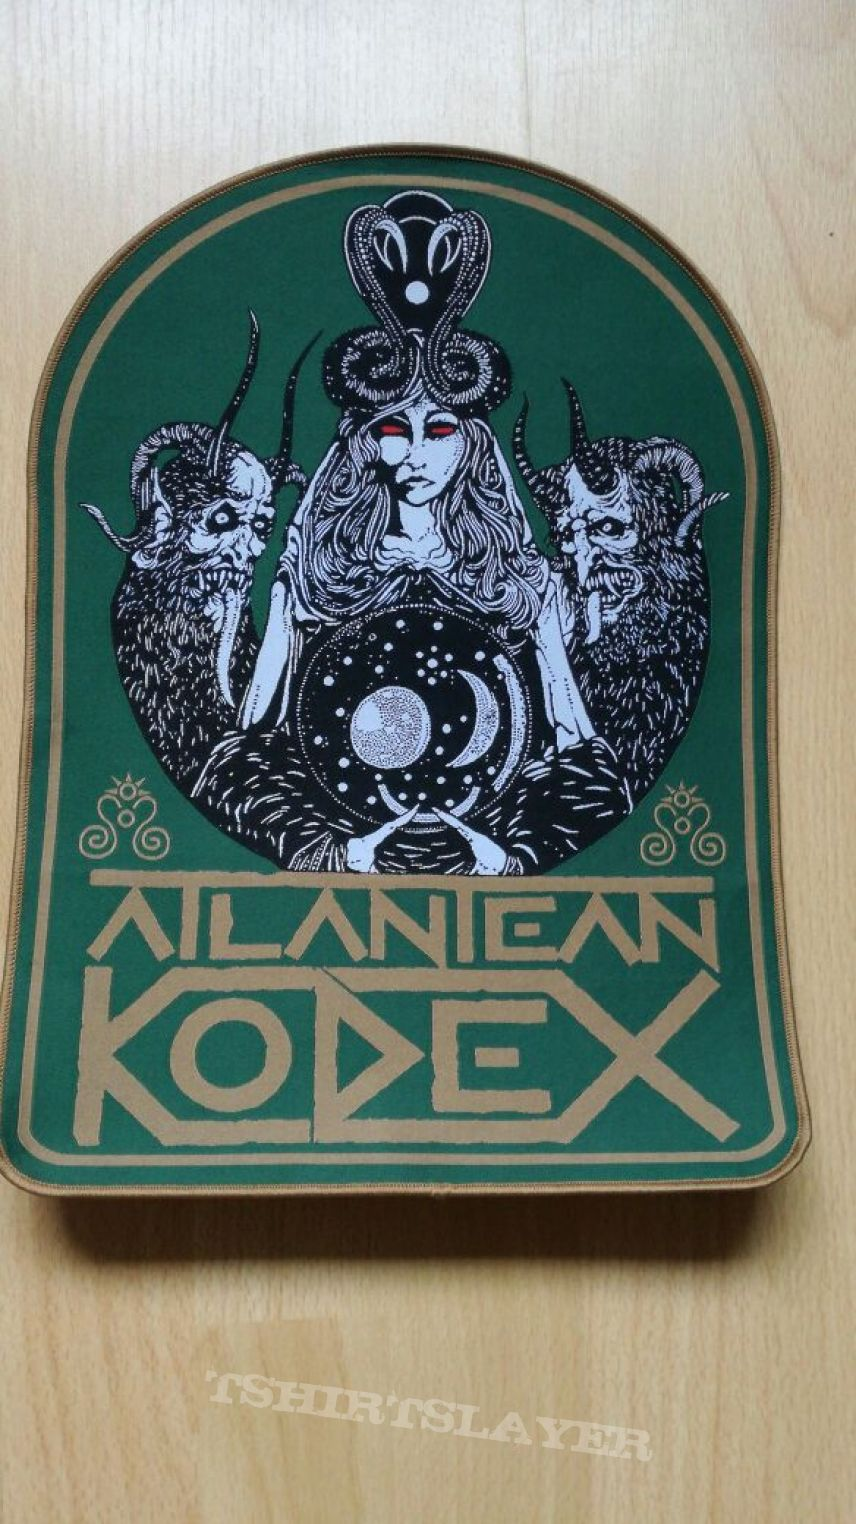 Atlantean Kodex Backpatch from KEEP IT TRUE 2017